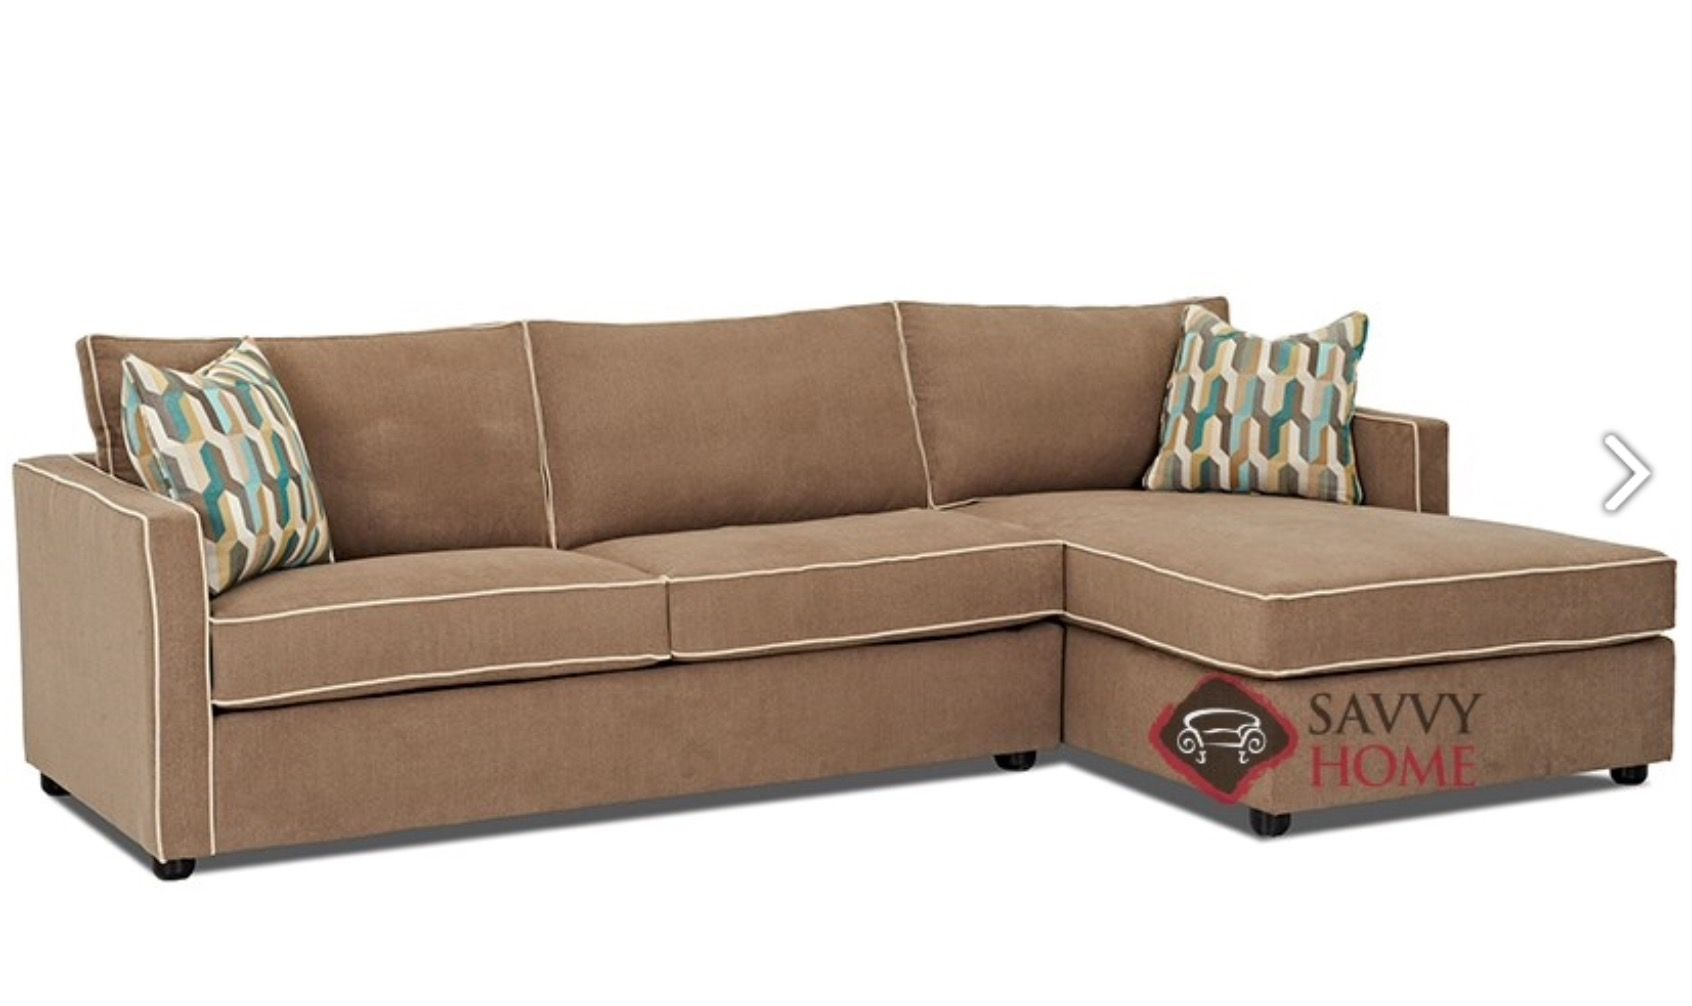 Pin By Cheryl Grosso On Beach Traditional Living Rooms Sectional Sleeper Sofa Sleeper Sofa Sectional Sofa With Chaise